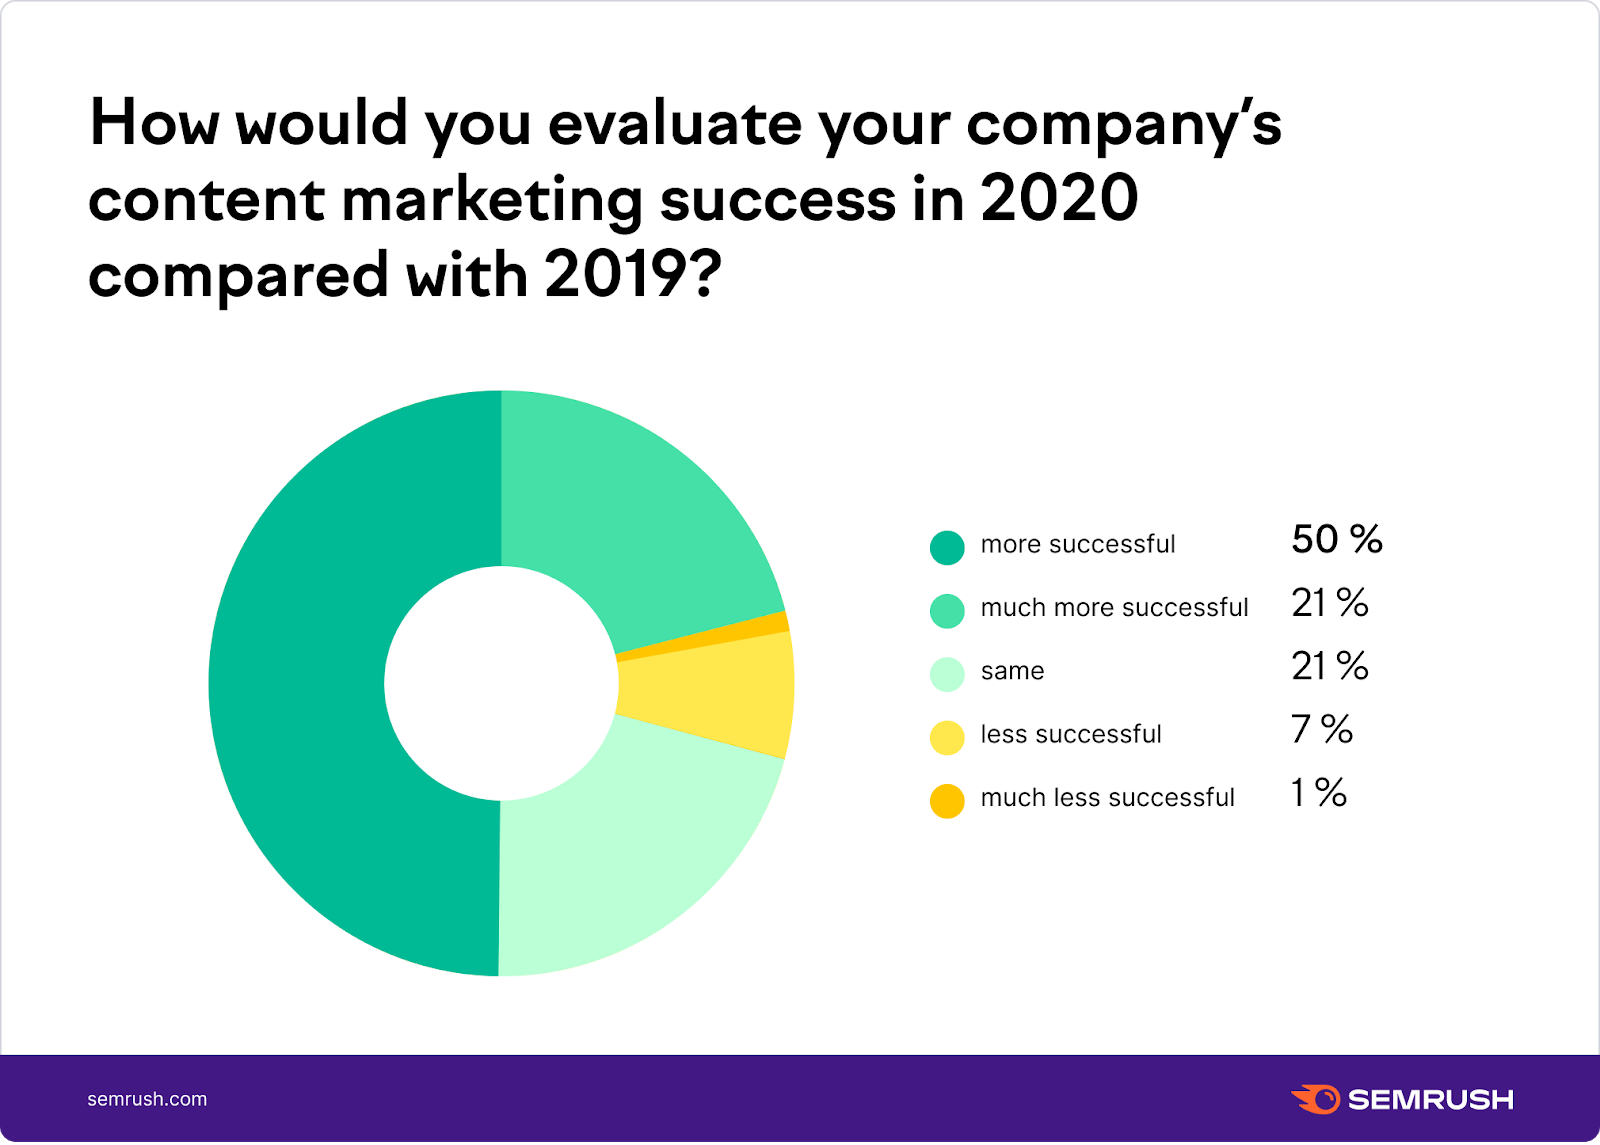 How would you evaluate your company's content marketing success?